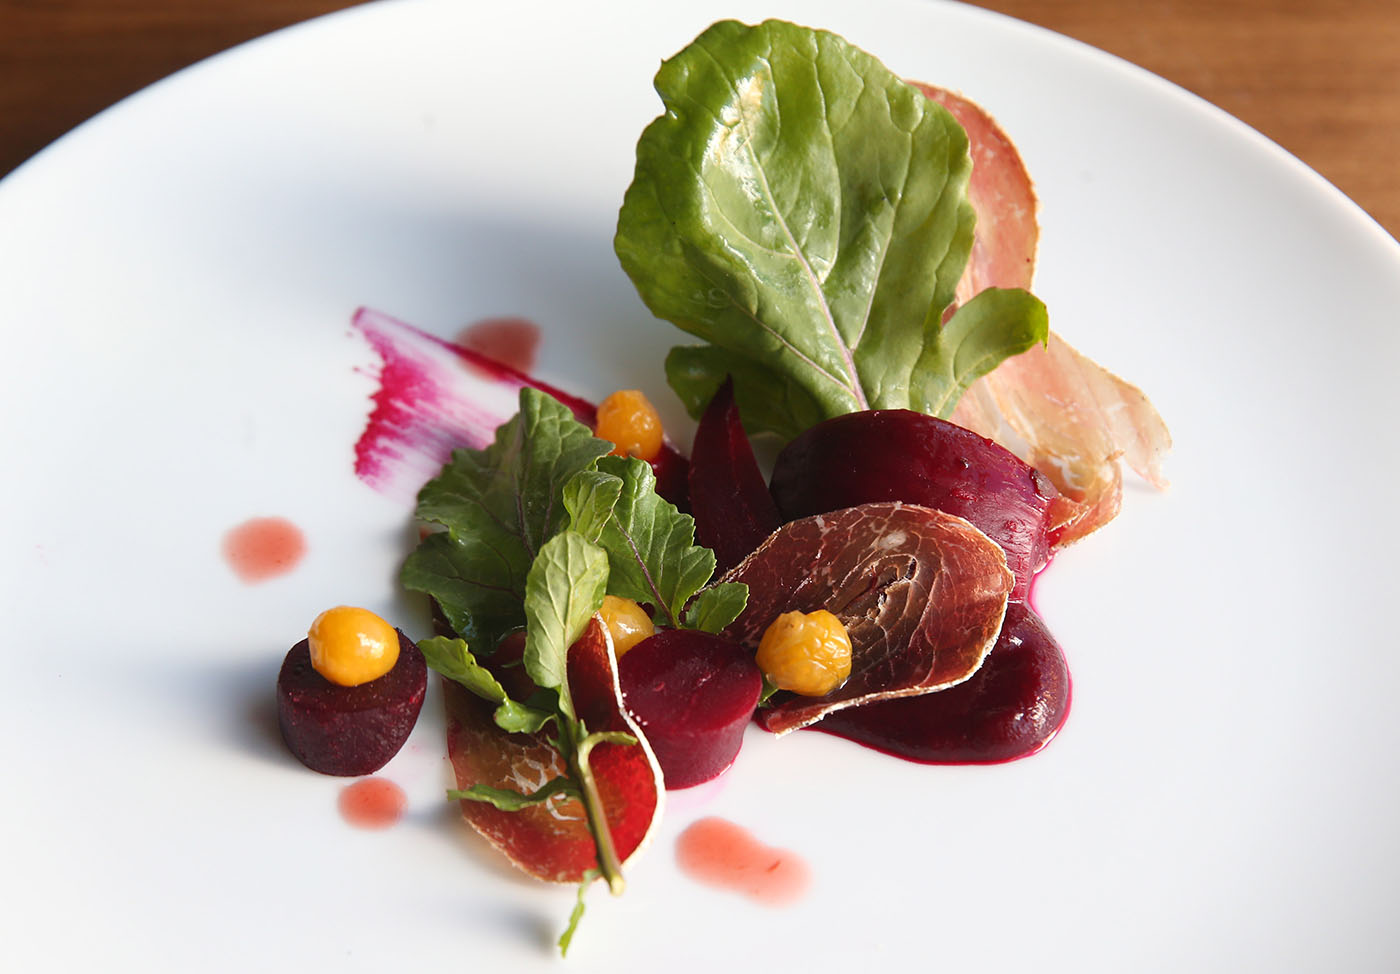 Carte Blanche is at 61 Buffalo St. in Hamburg. The beet salad is made with beet pudding, bresaola, pickled Inca berry and housemade plum vinegar. Photo taken, Friday, Nov. 18, 2016. (Sharon Cantillon/Buffalo News)